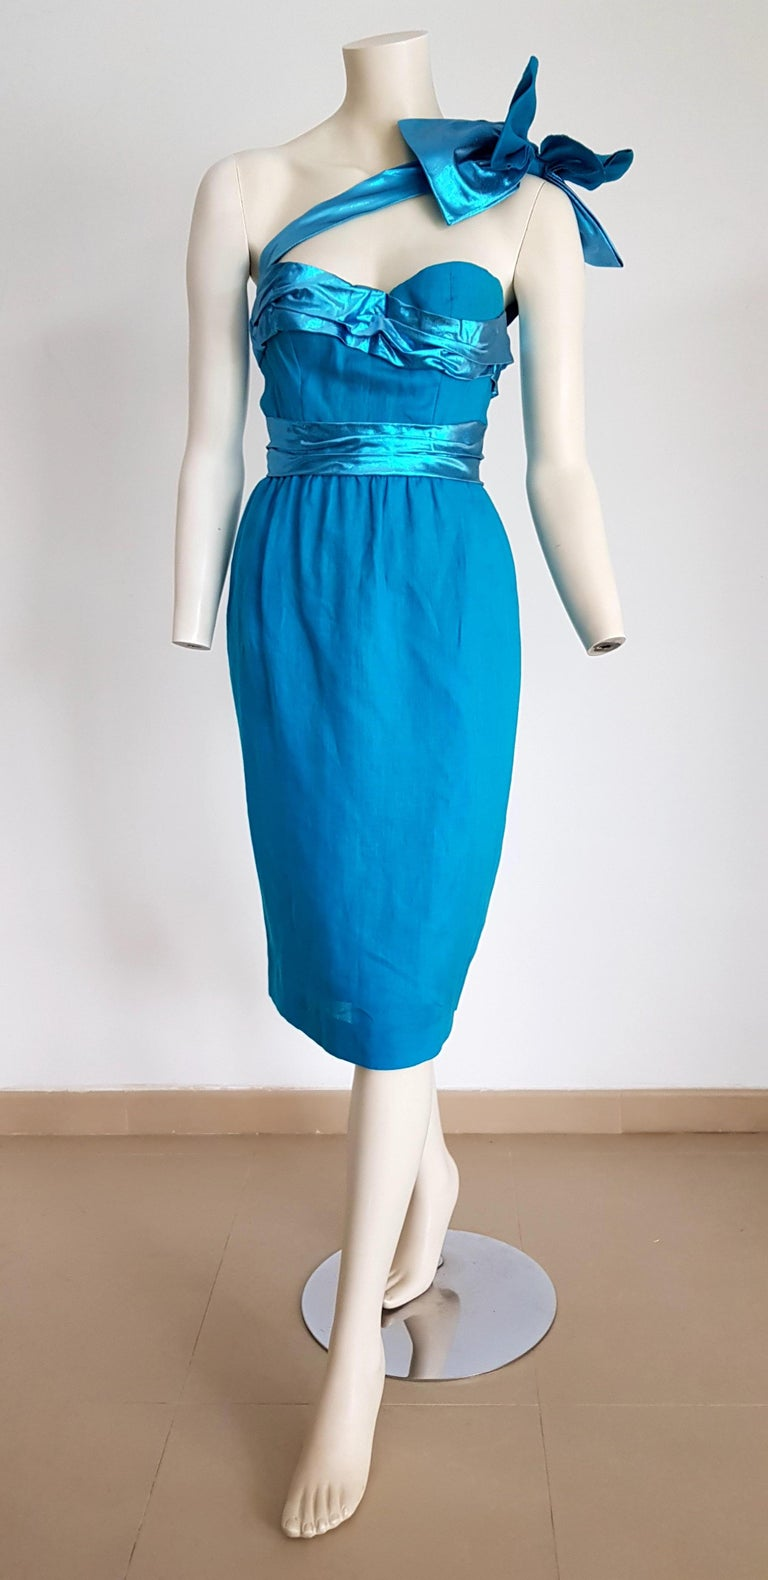 VALENTINO Haute Couture a Shoulder Strap Turquoise Evening Dress - Unworn, New.  SIZE: equivalent to about Small / Medium, please review approx measurements as follows in cm: lenght 104, chest underarm to underarm 50, bust circumference 89, waist